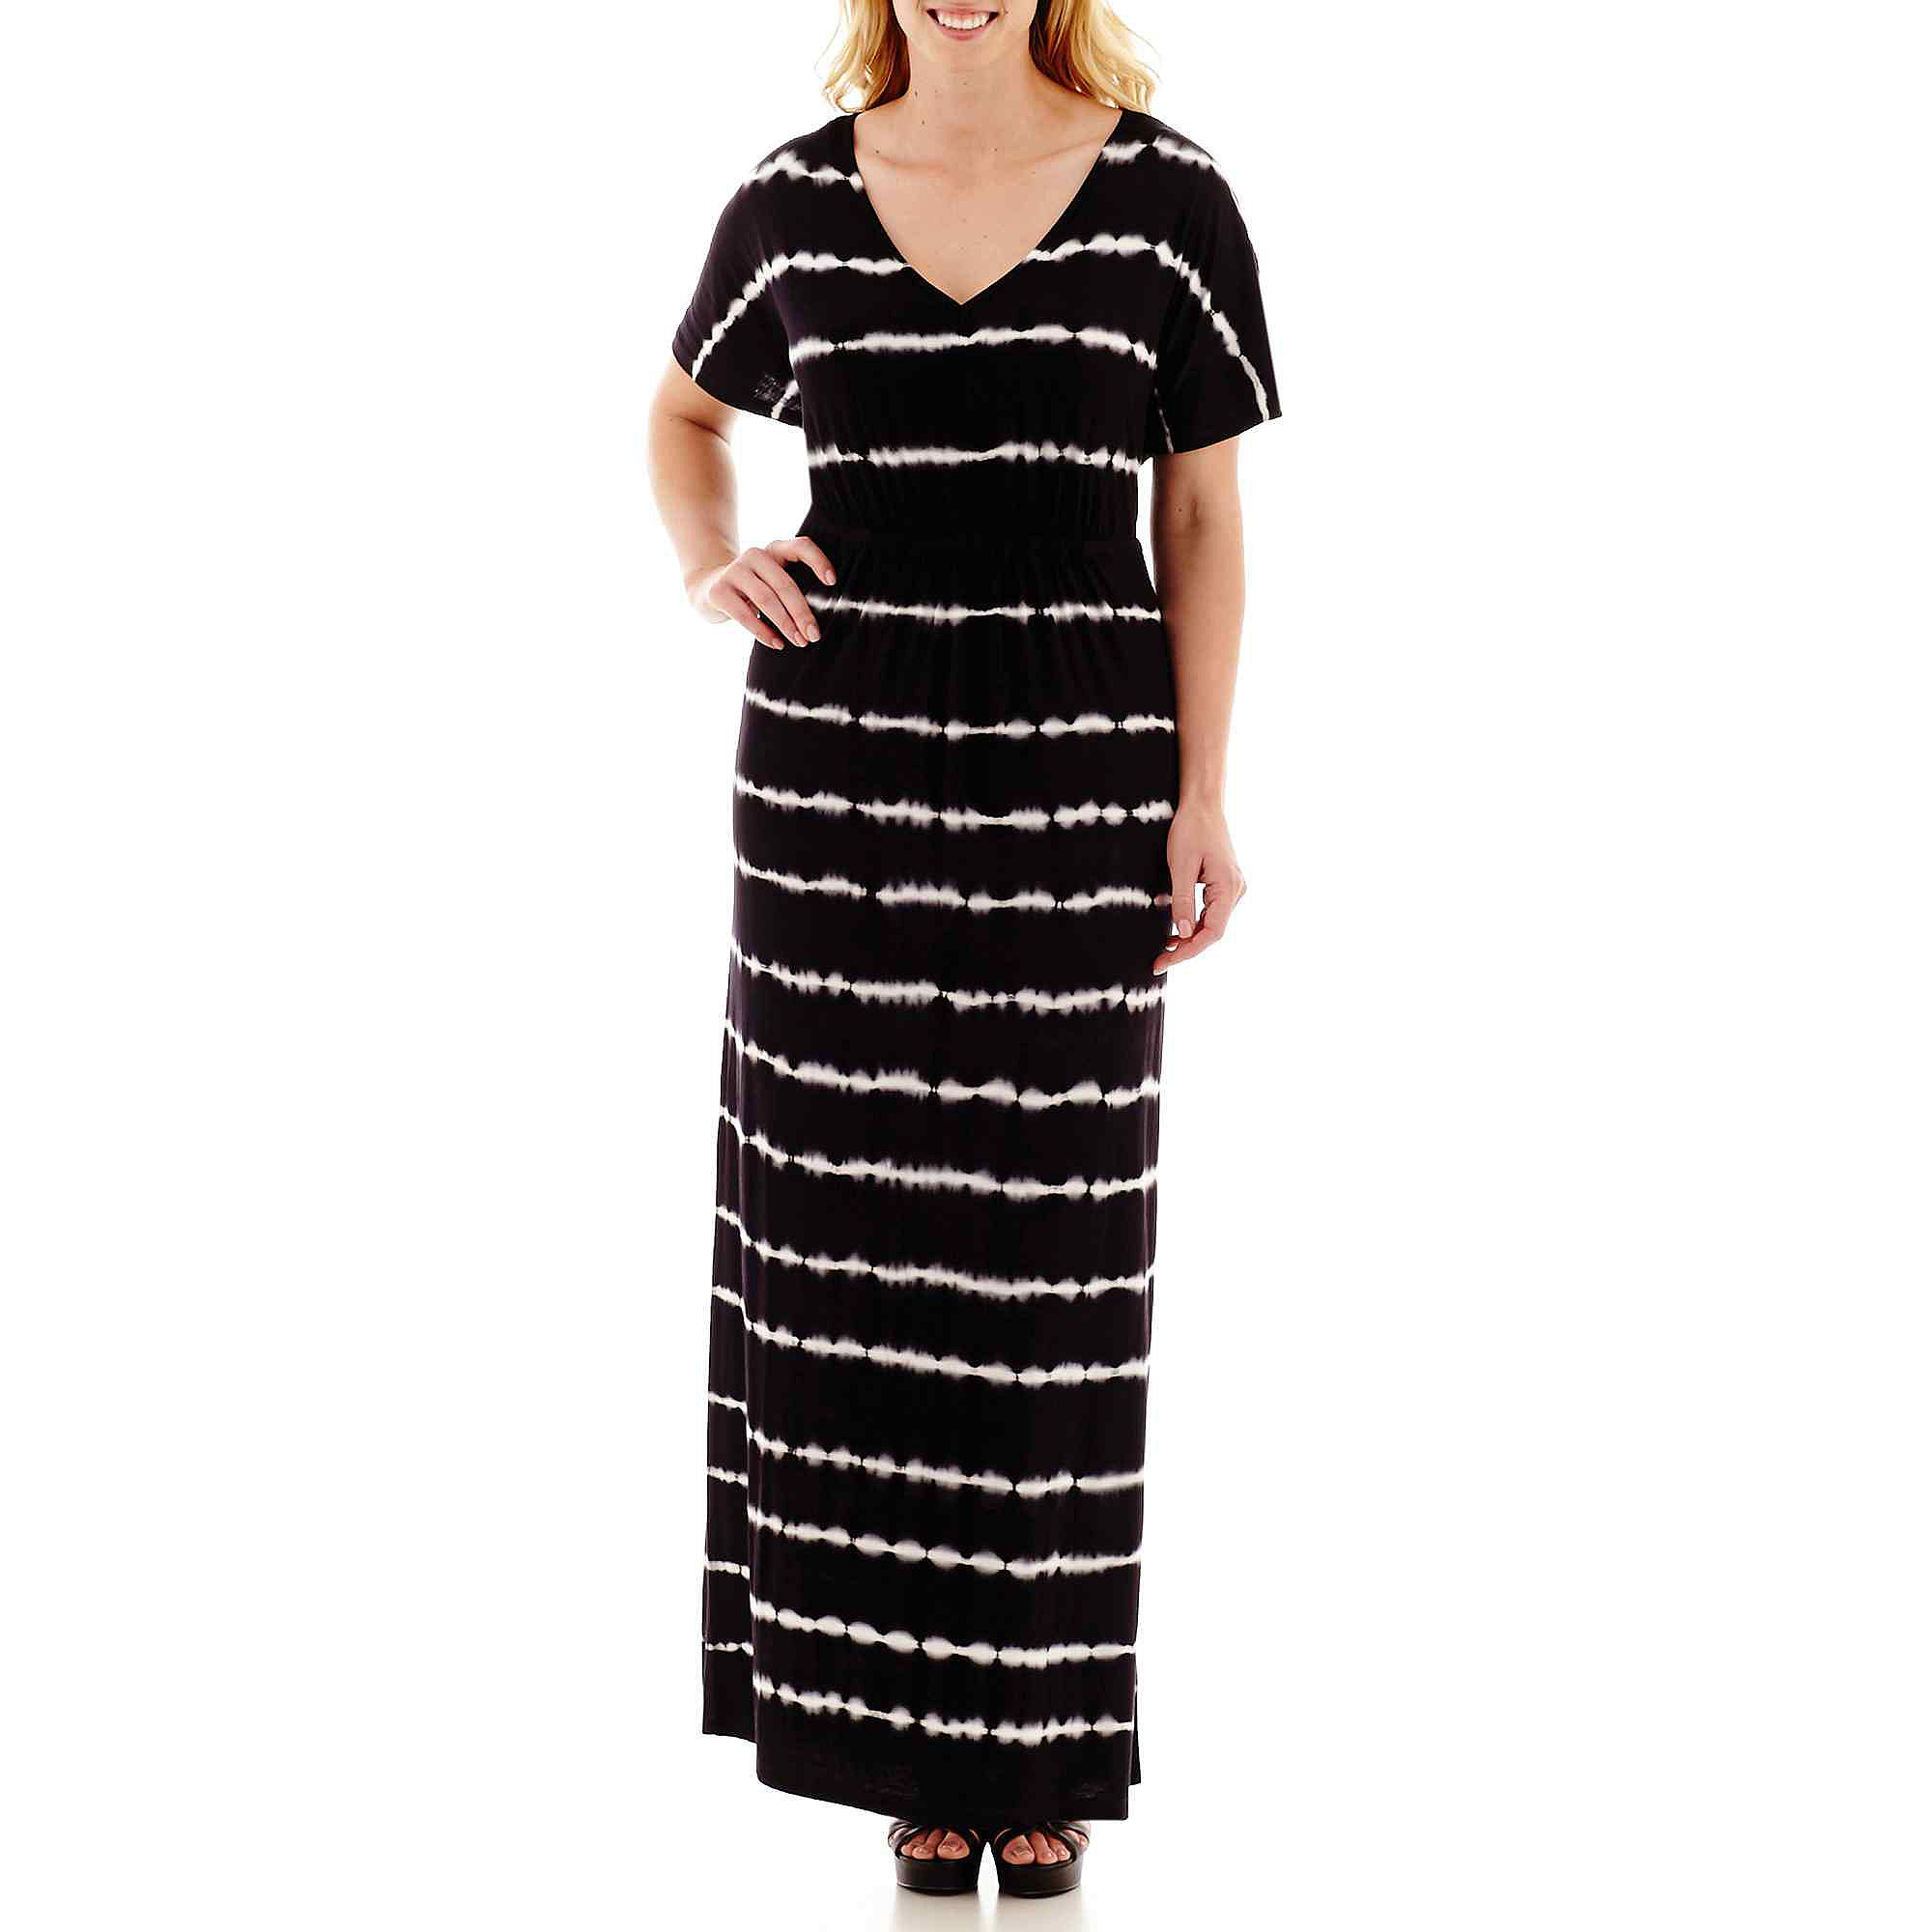 a.n.a Short-Sleeve Tie-Dyed Maxi Dress - Plus